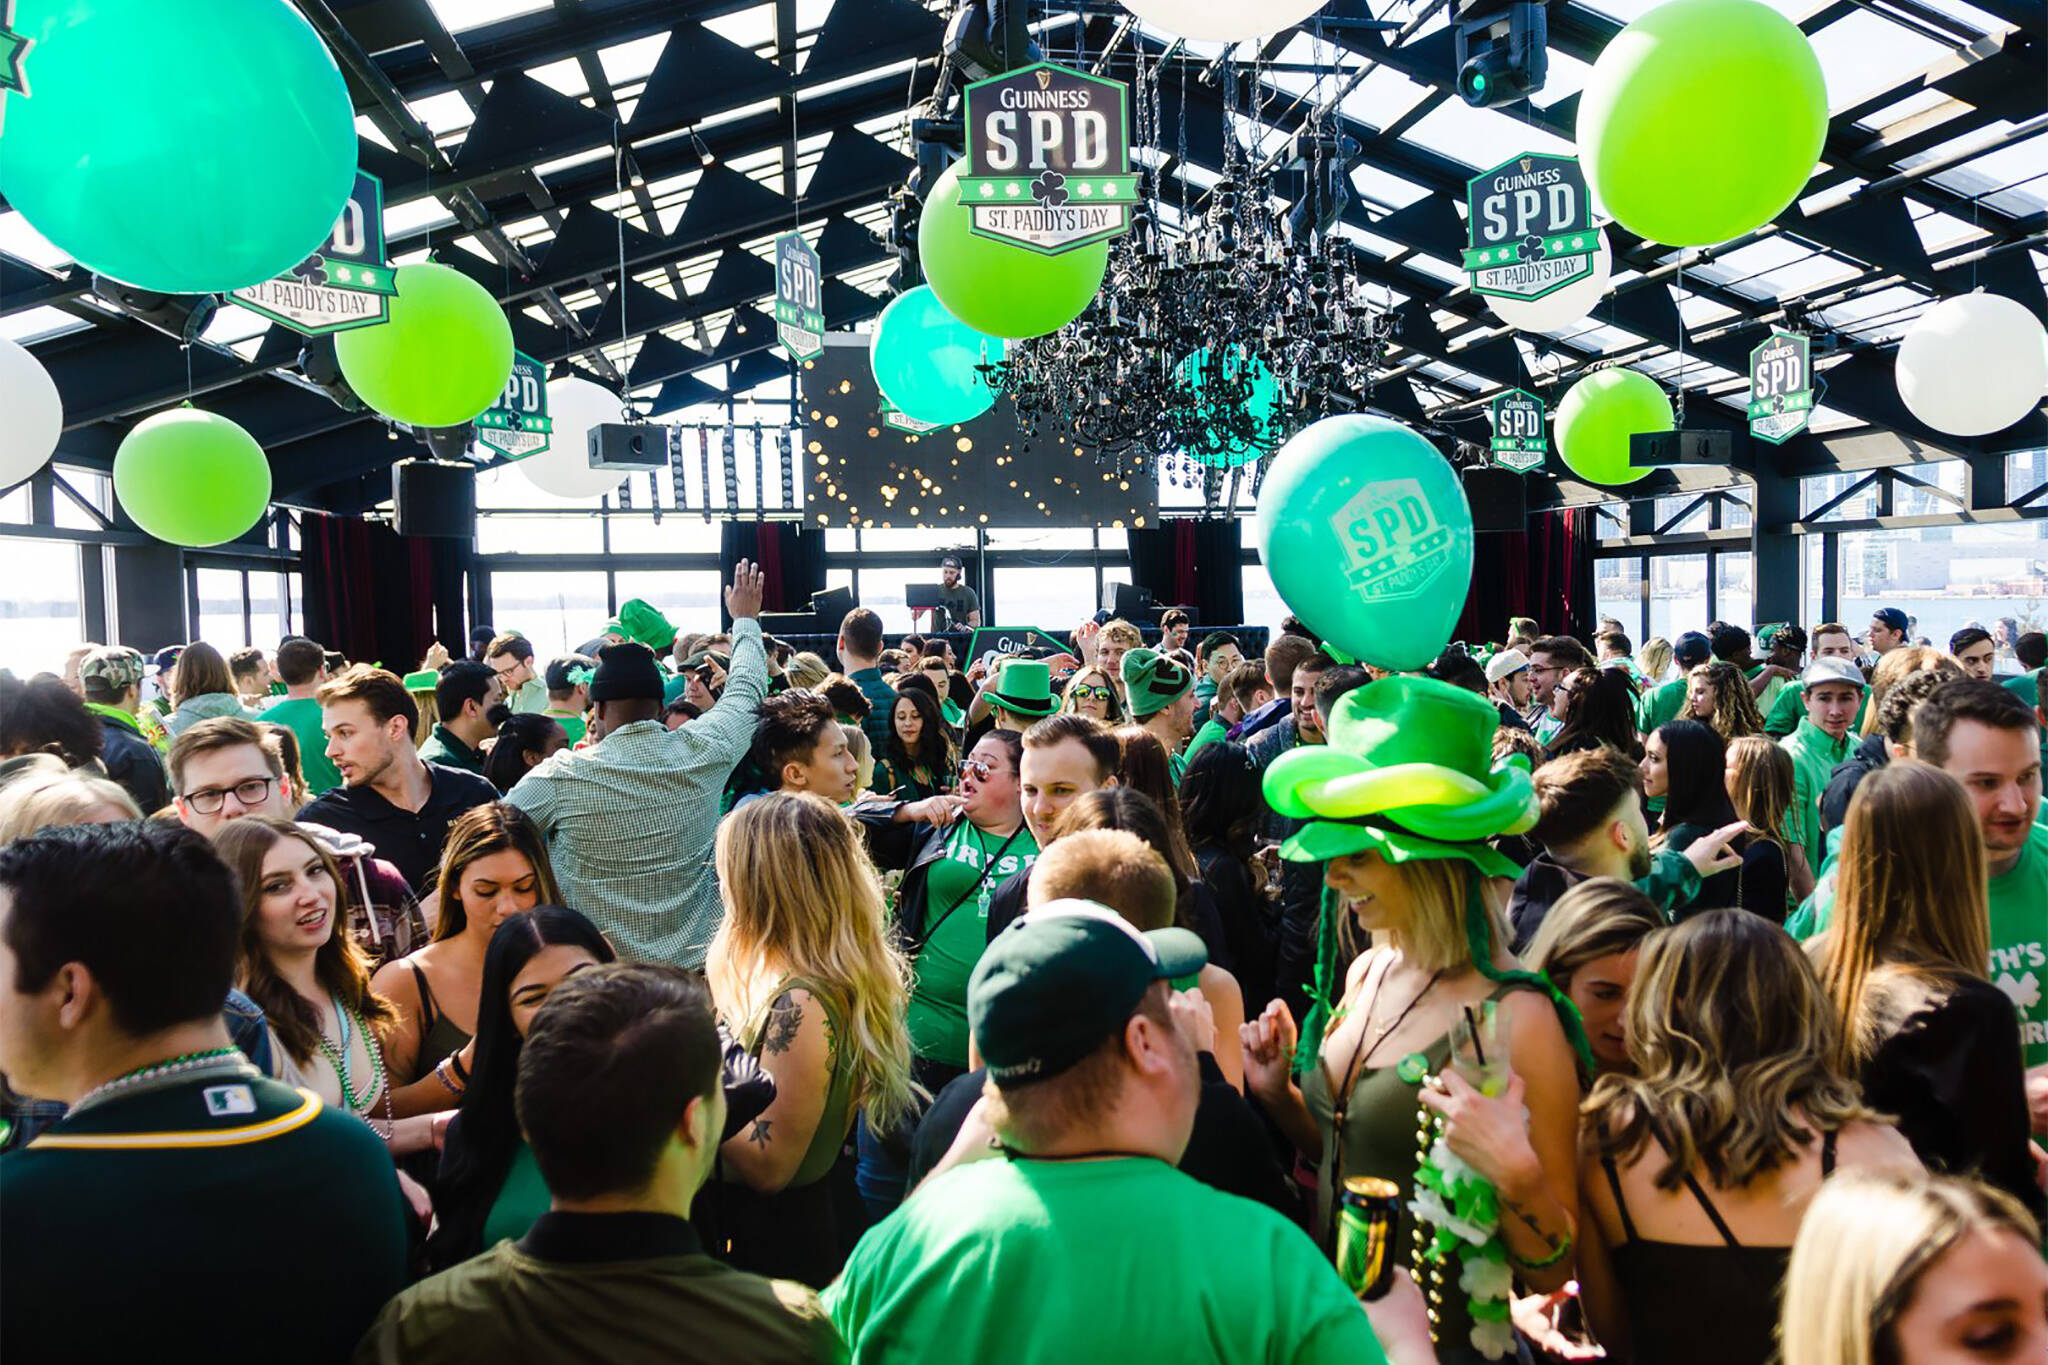 st Patricks day toronto